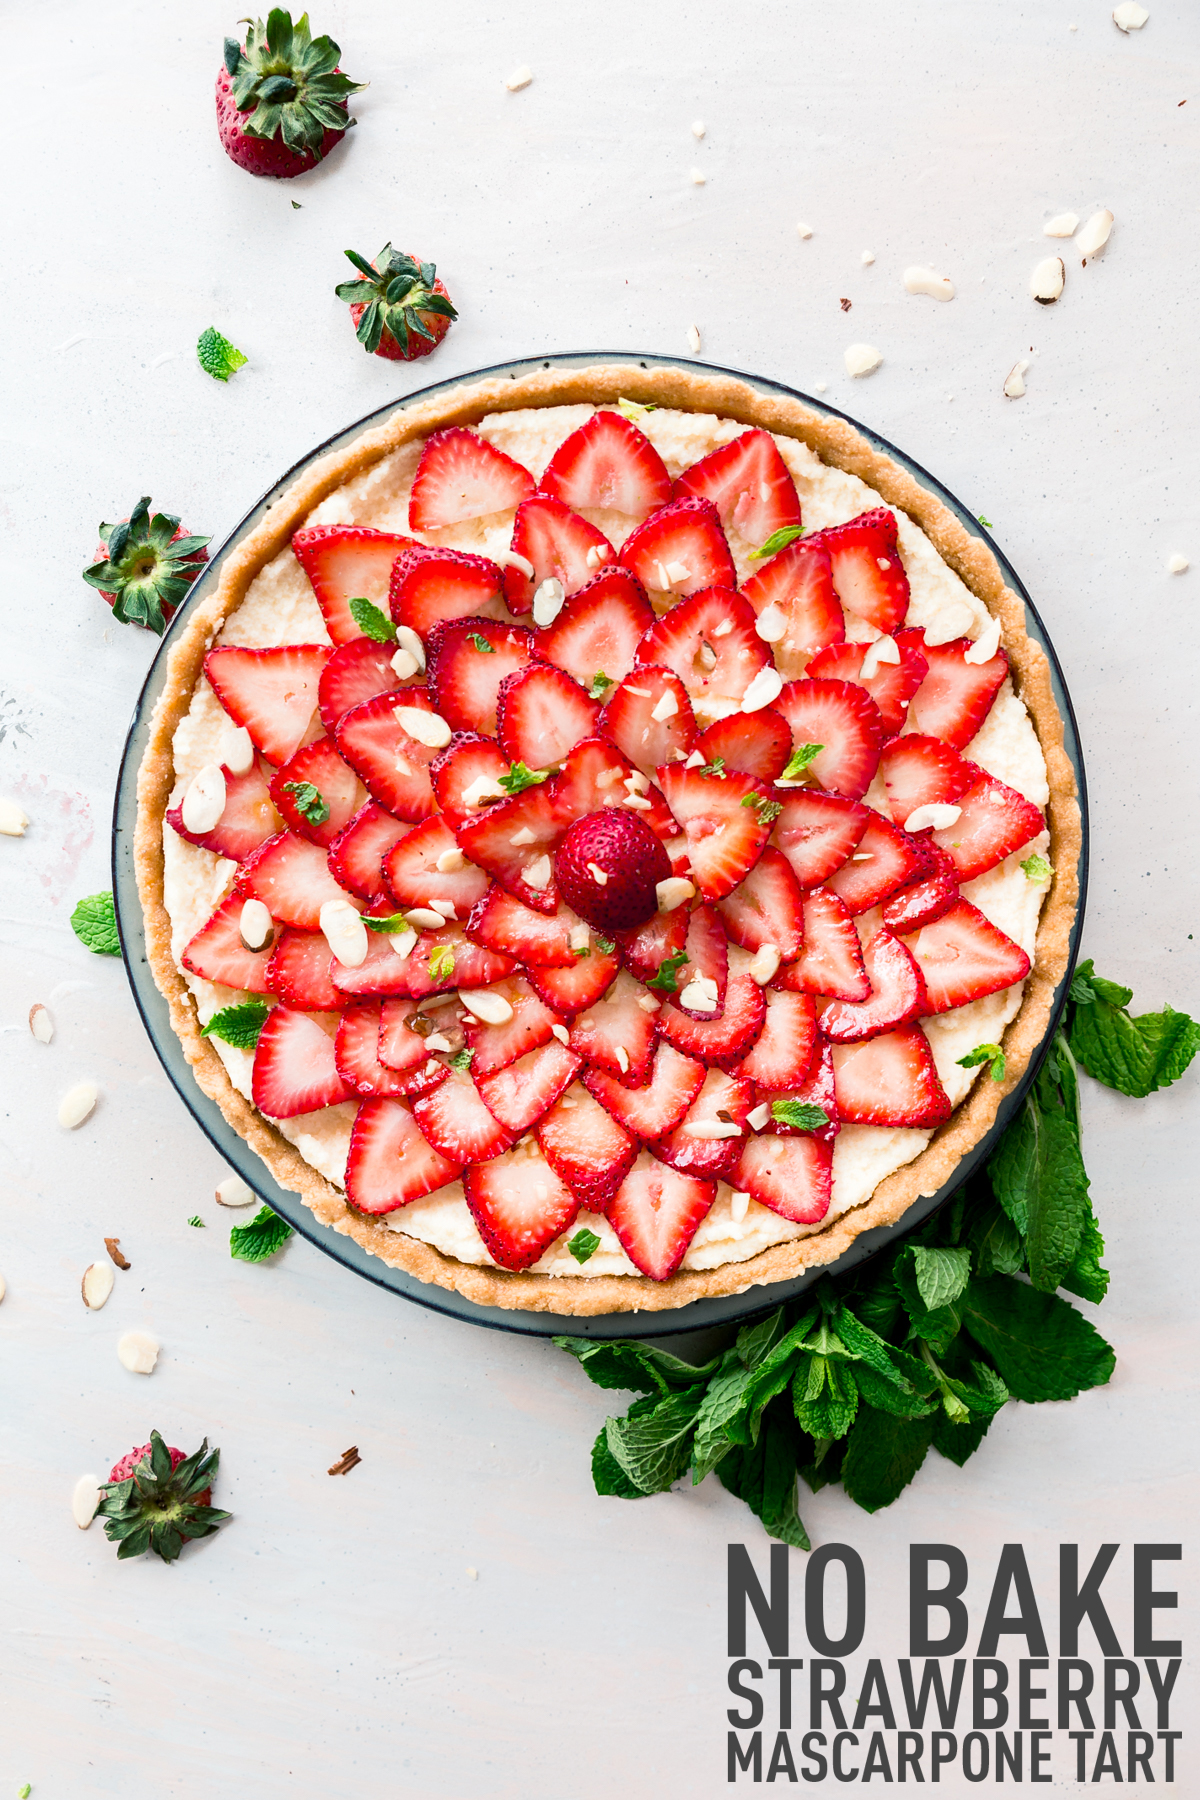 No-Bake Strawberry Mascaropone Tart made with fresh fruit and mascarpone cheese. Perfect for mother's day or any occasion.